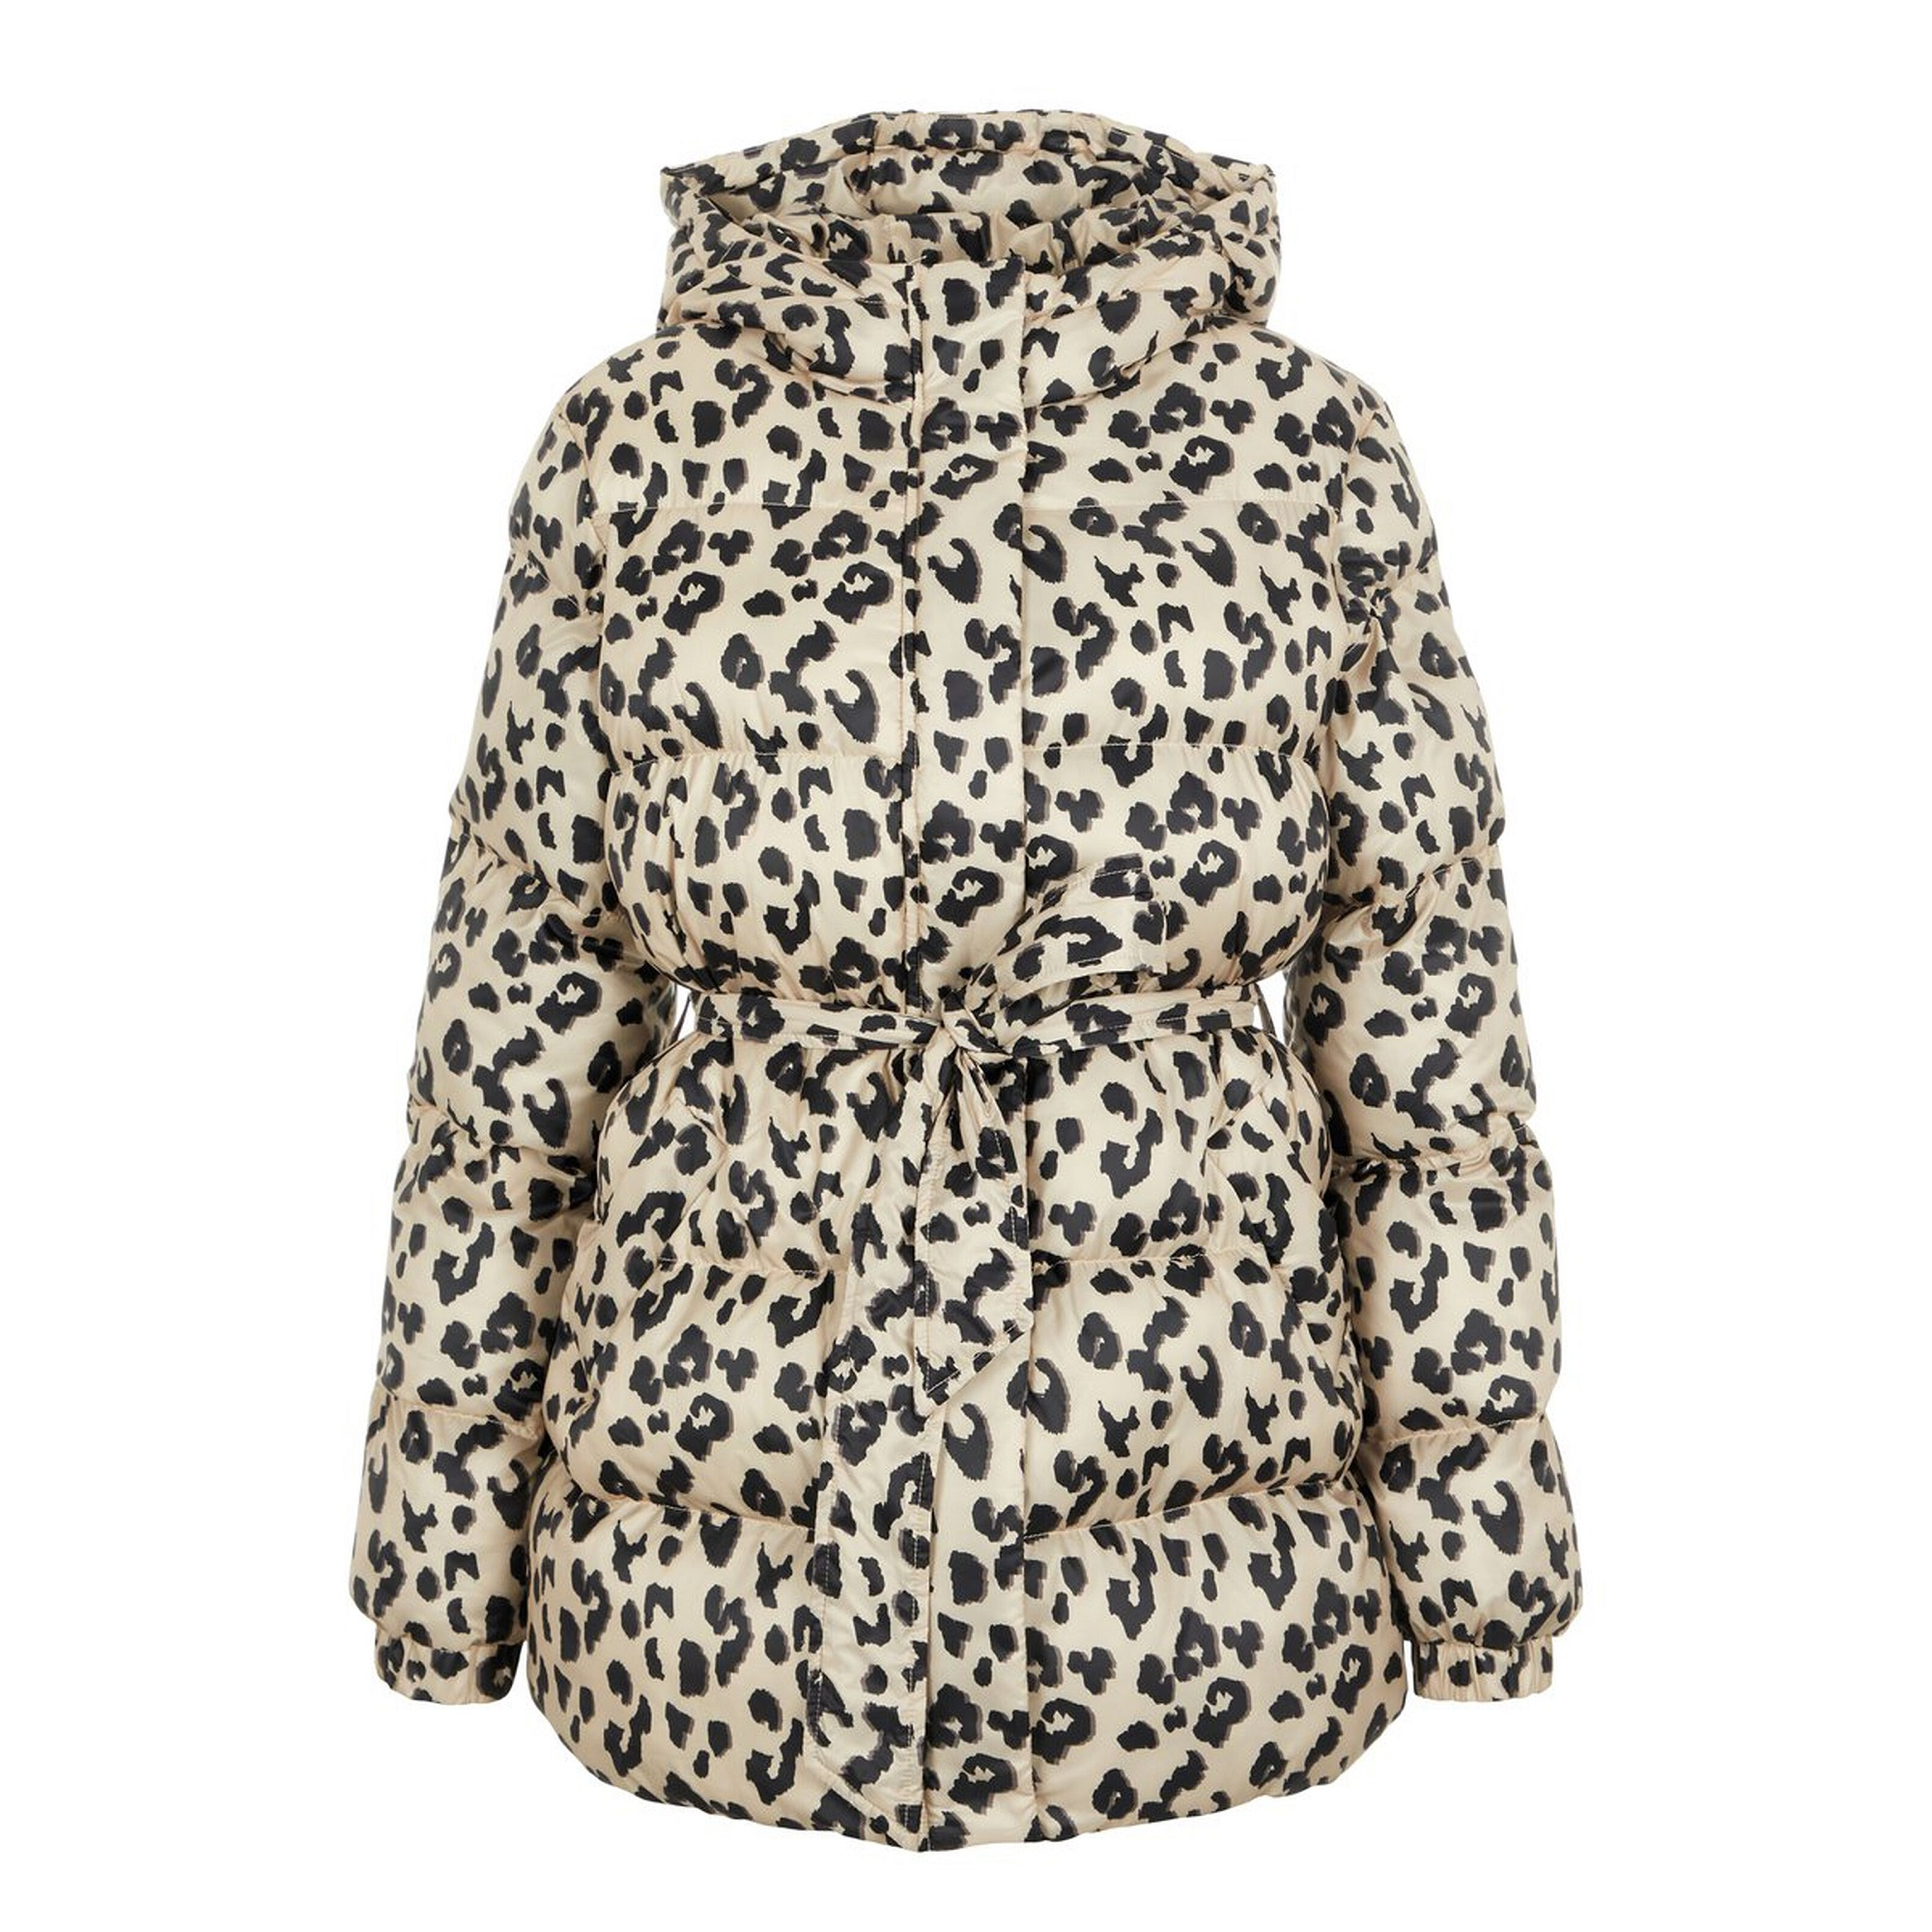 SALE Emma Leopard Print Hooded Jacket was £65.00